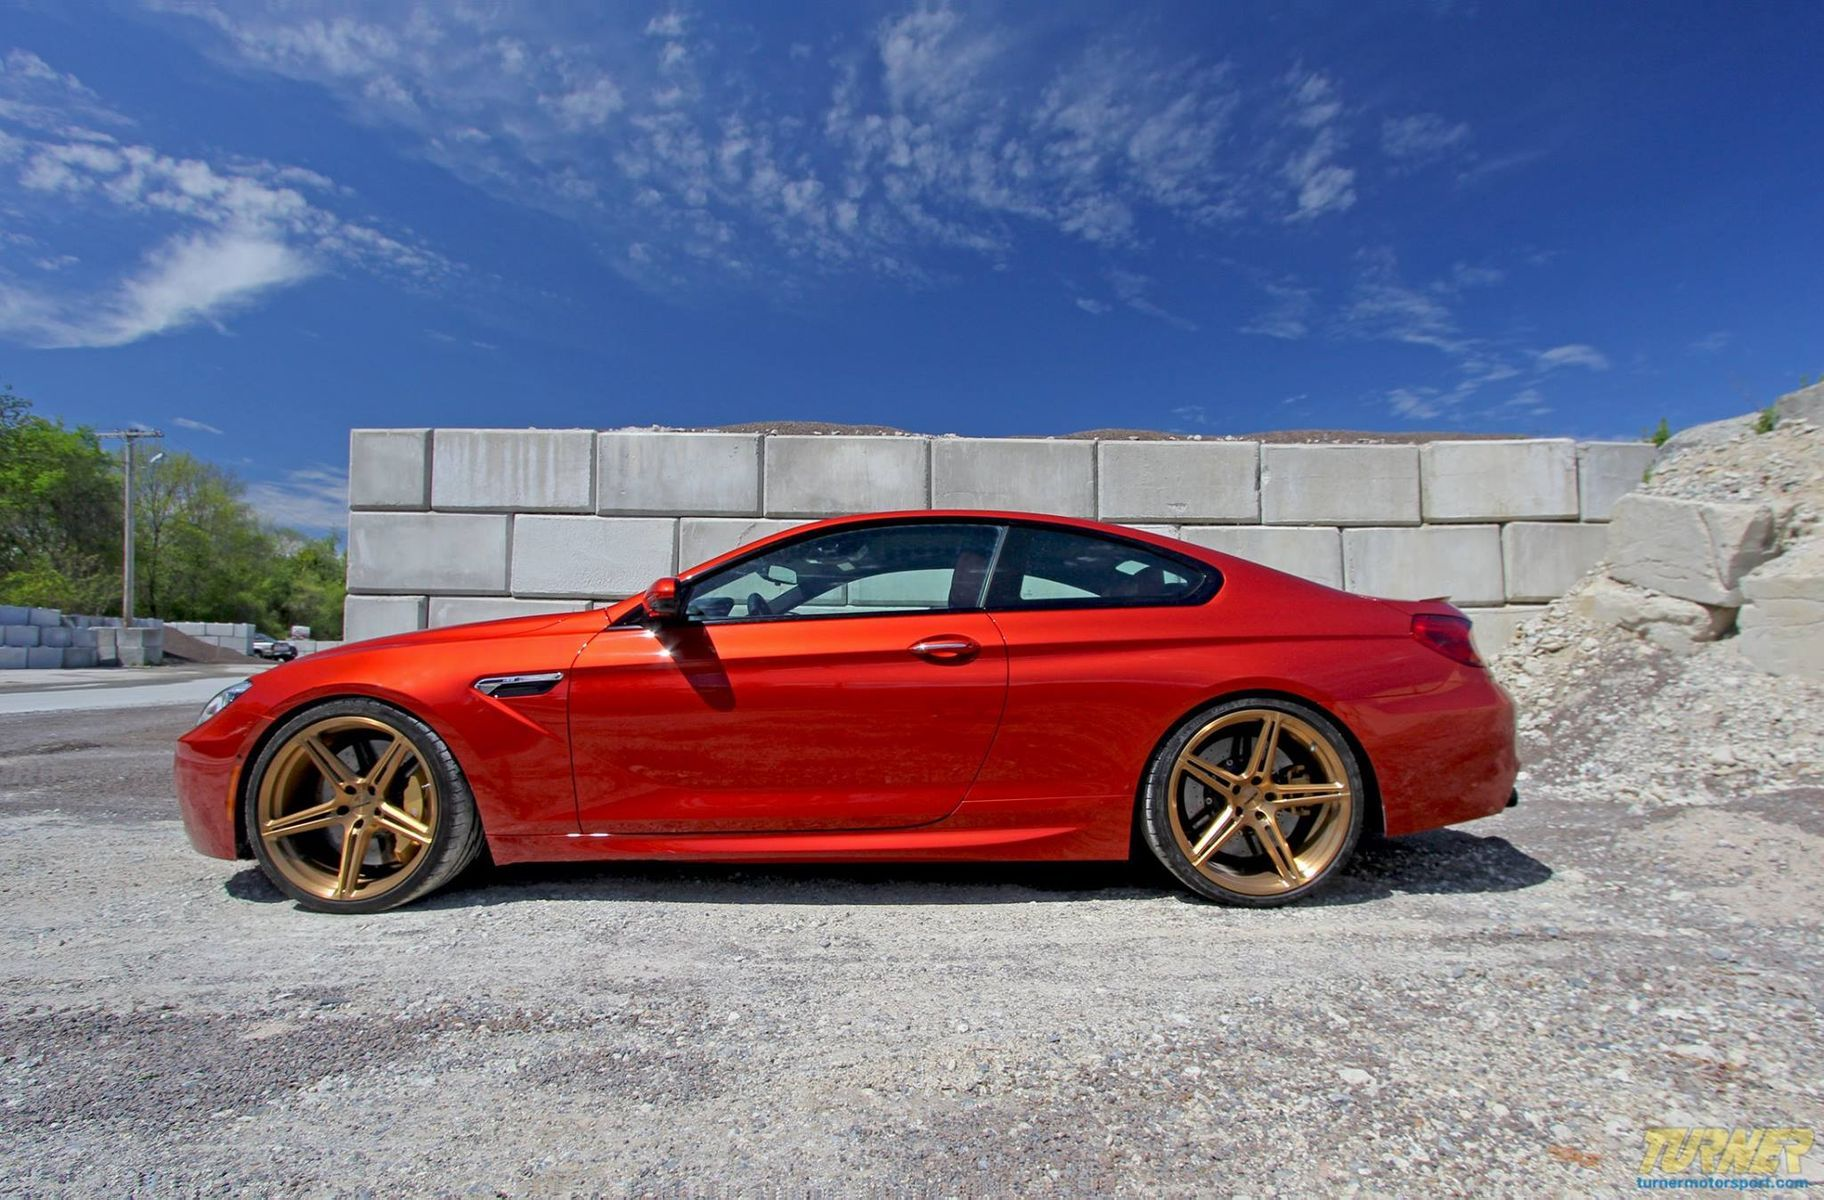 2015 BMW M6 | Turner Motorsport's BMW F13 M6 on Forgeline One Piece Forged Monoblock SC1 Wheels